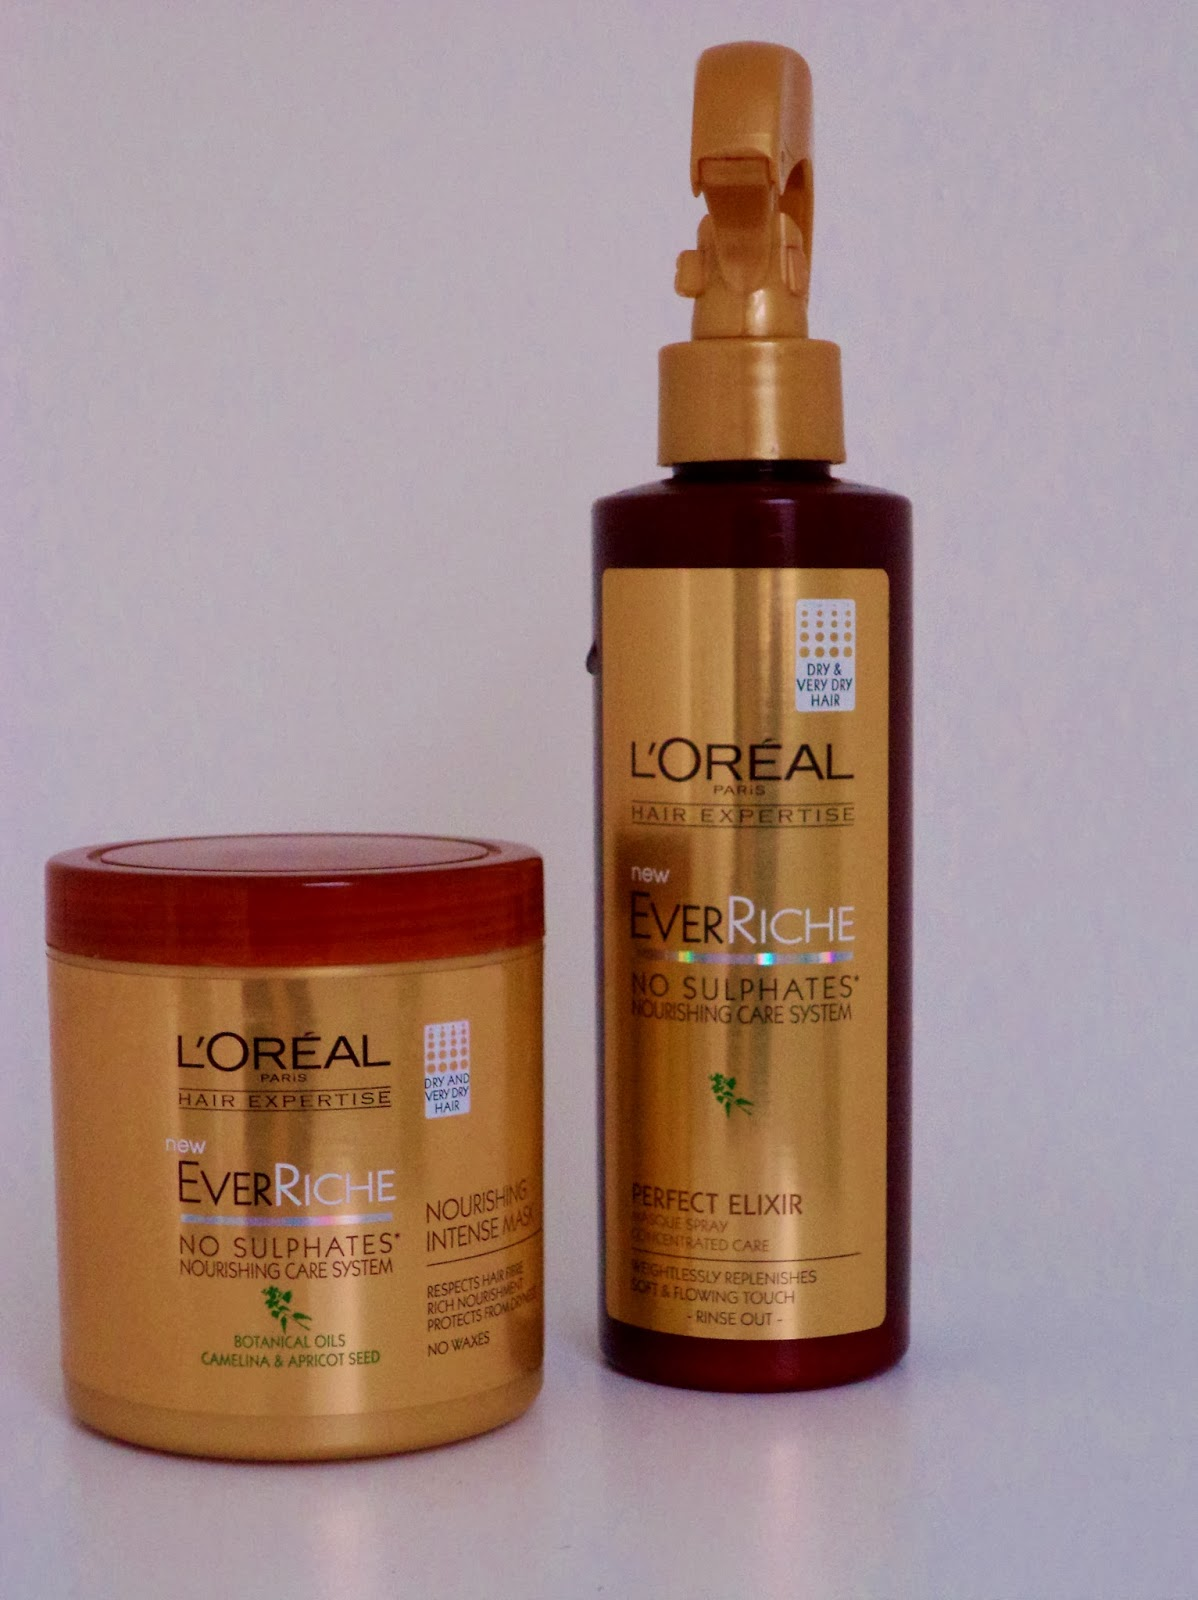 l'oreal ever riche